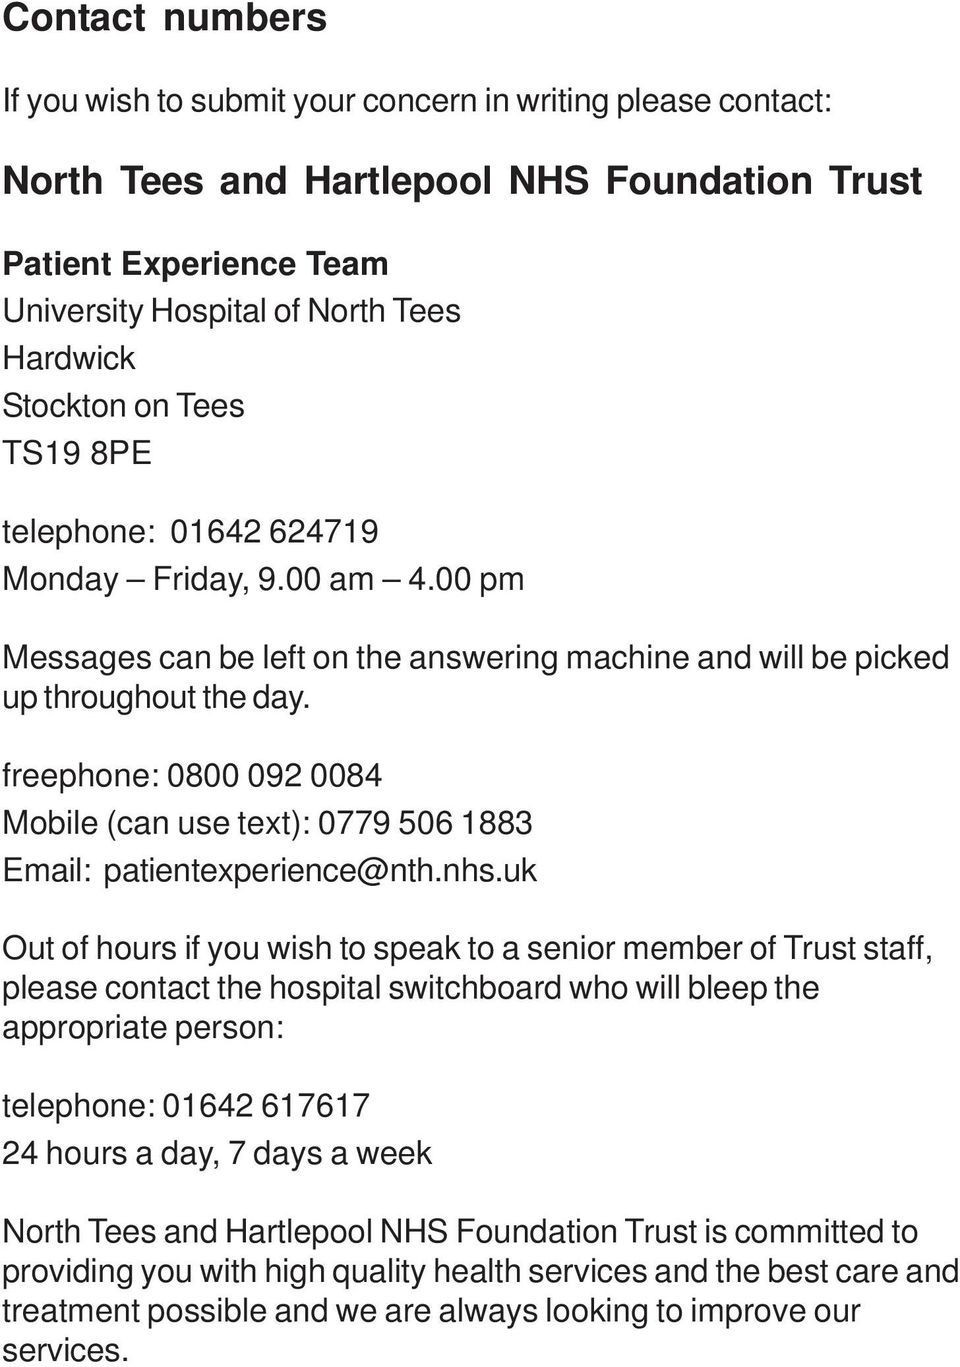 freephone: 0800 092 0084 Mobile (can use text): 0779 506 1883 Email: patientexperience@nth.nhs.